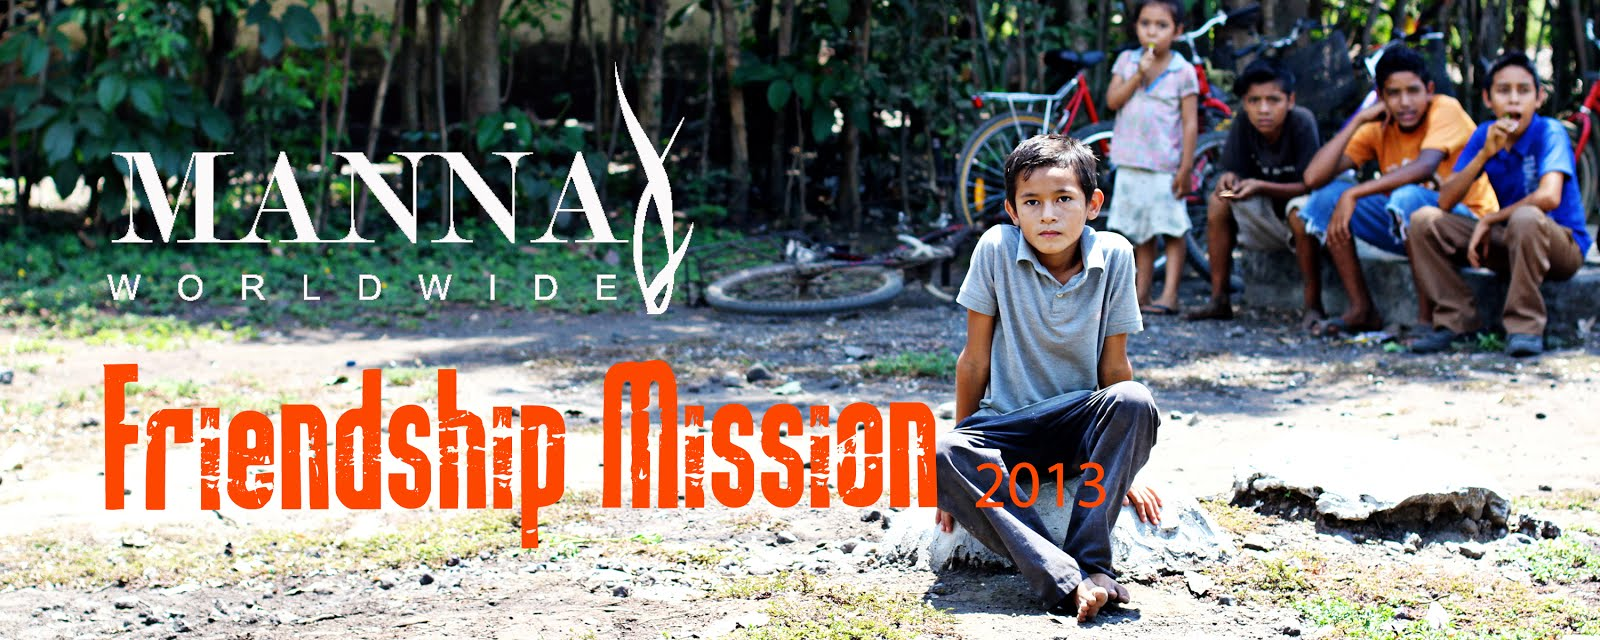 friendshipmission2013